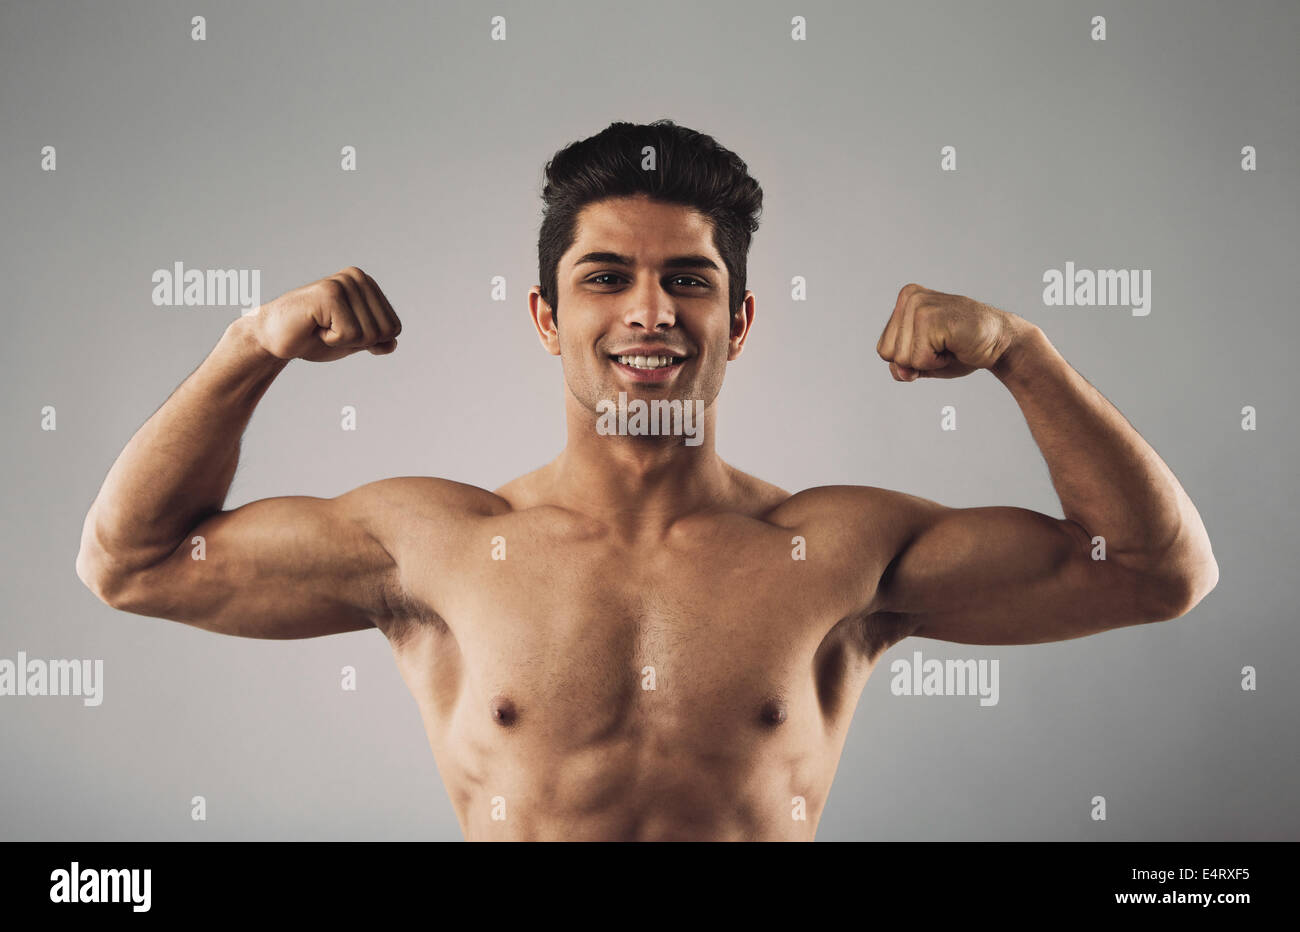 Portrait of hispanic young muscular man flexing his biceps isolated on grey background. Happy masculine man pulling - Stock Image